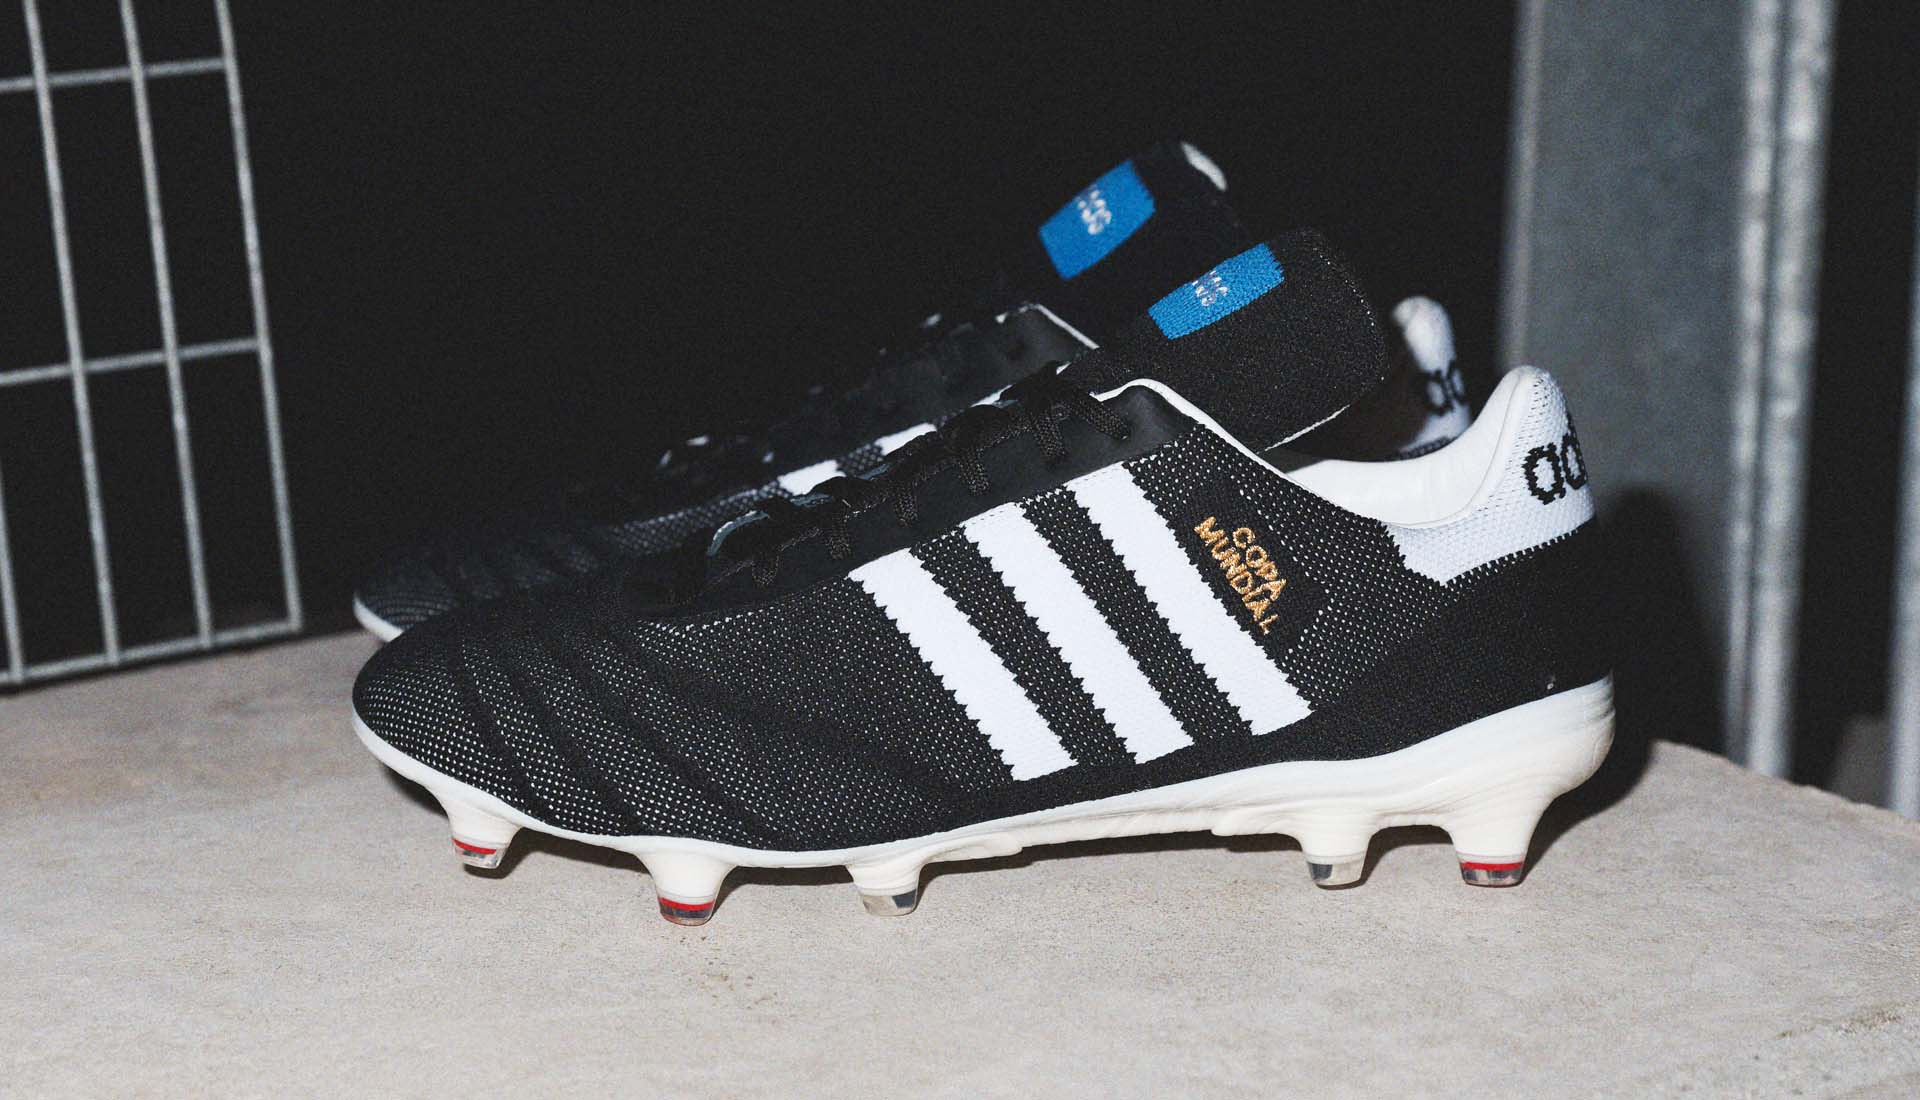 separation shoes 98256 936d2 4-adidas-copa-70-boots-min.jpg